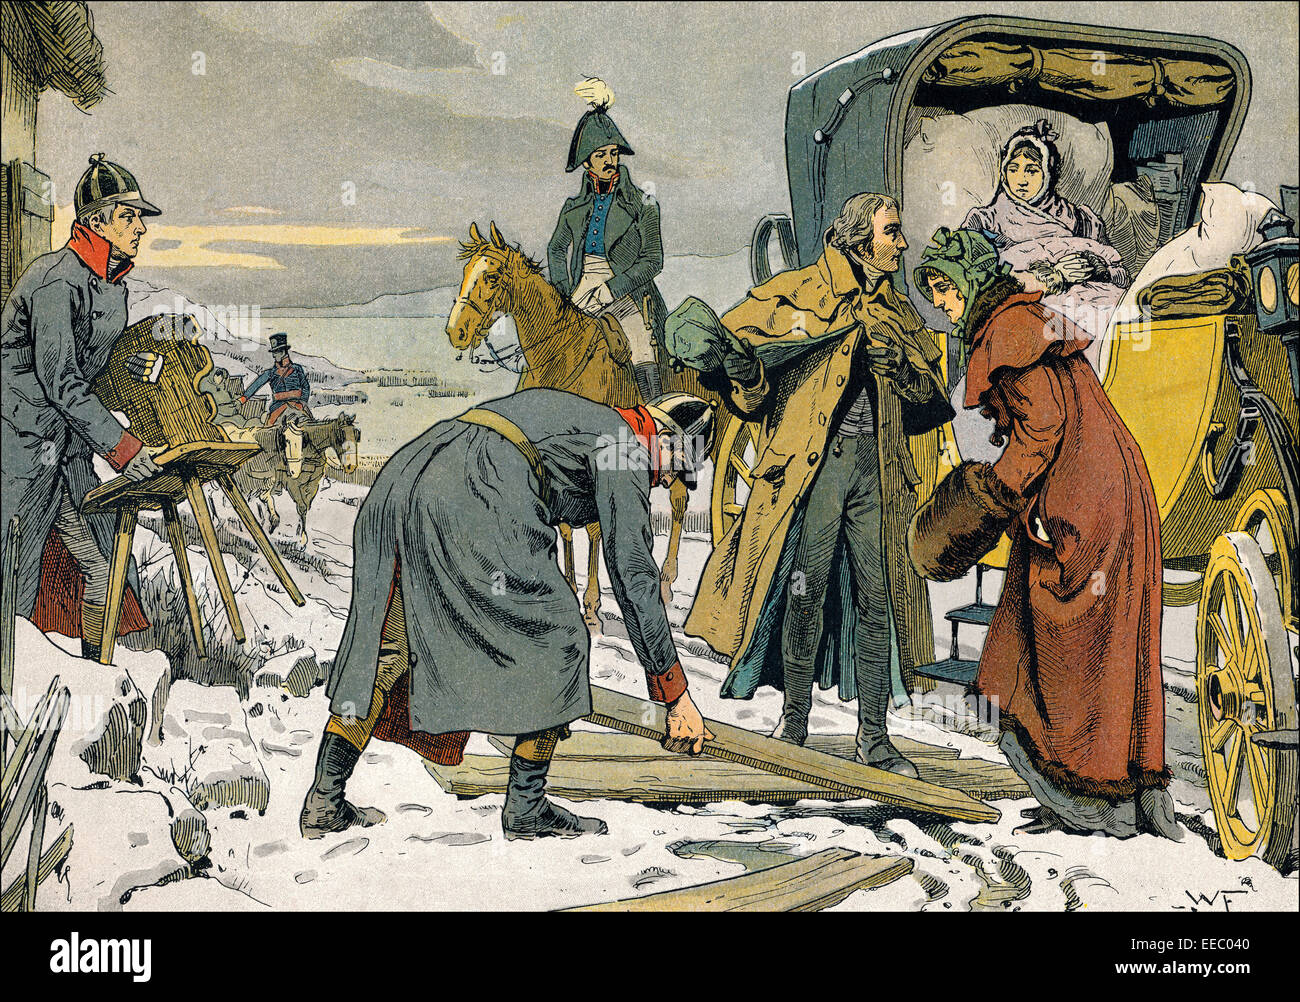 Napoleonic Wars, the escape of the Royal familiy from Koenigsberg to Memel through the Curonian Spit on 5 January - Stock Image